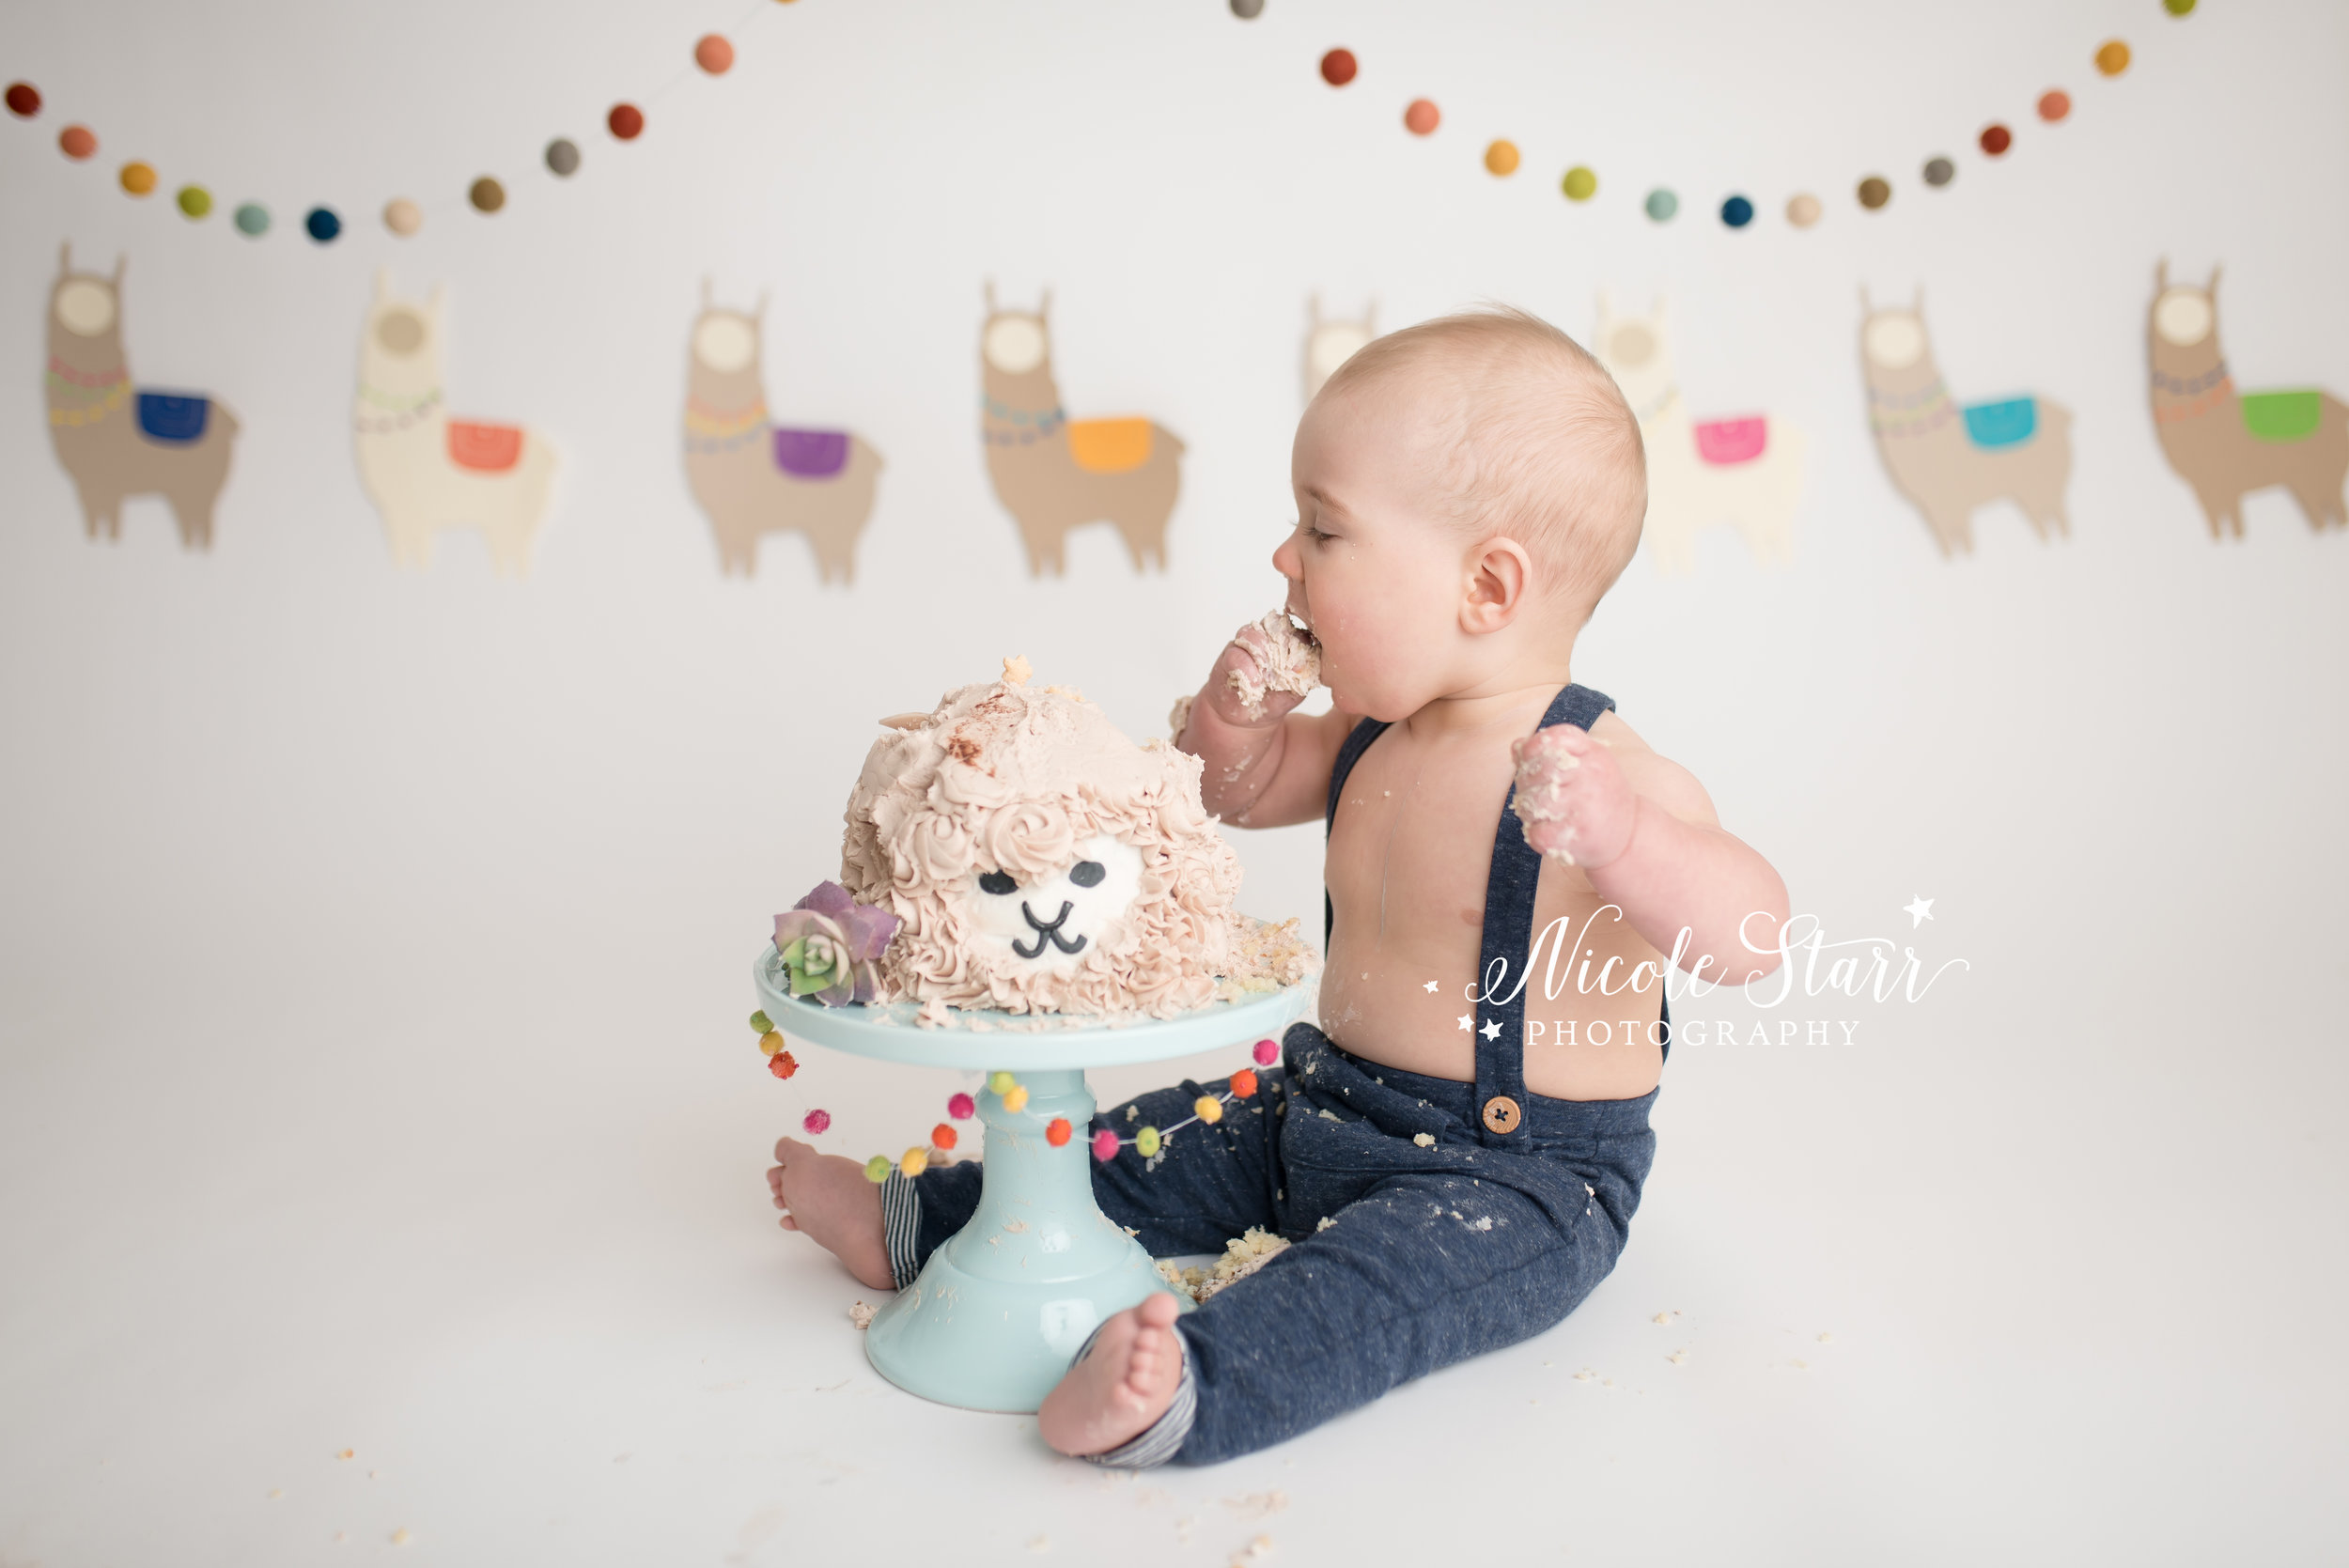 llama cake smash, nicole starr photography, saratoga springs cake smash photographer-8.jpg